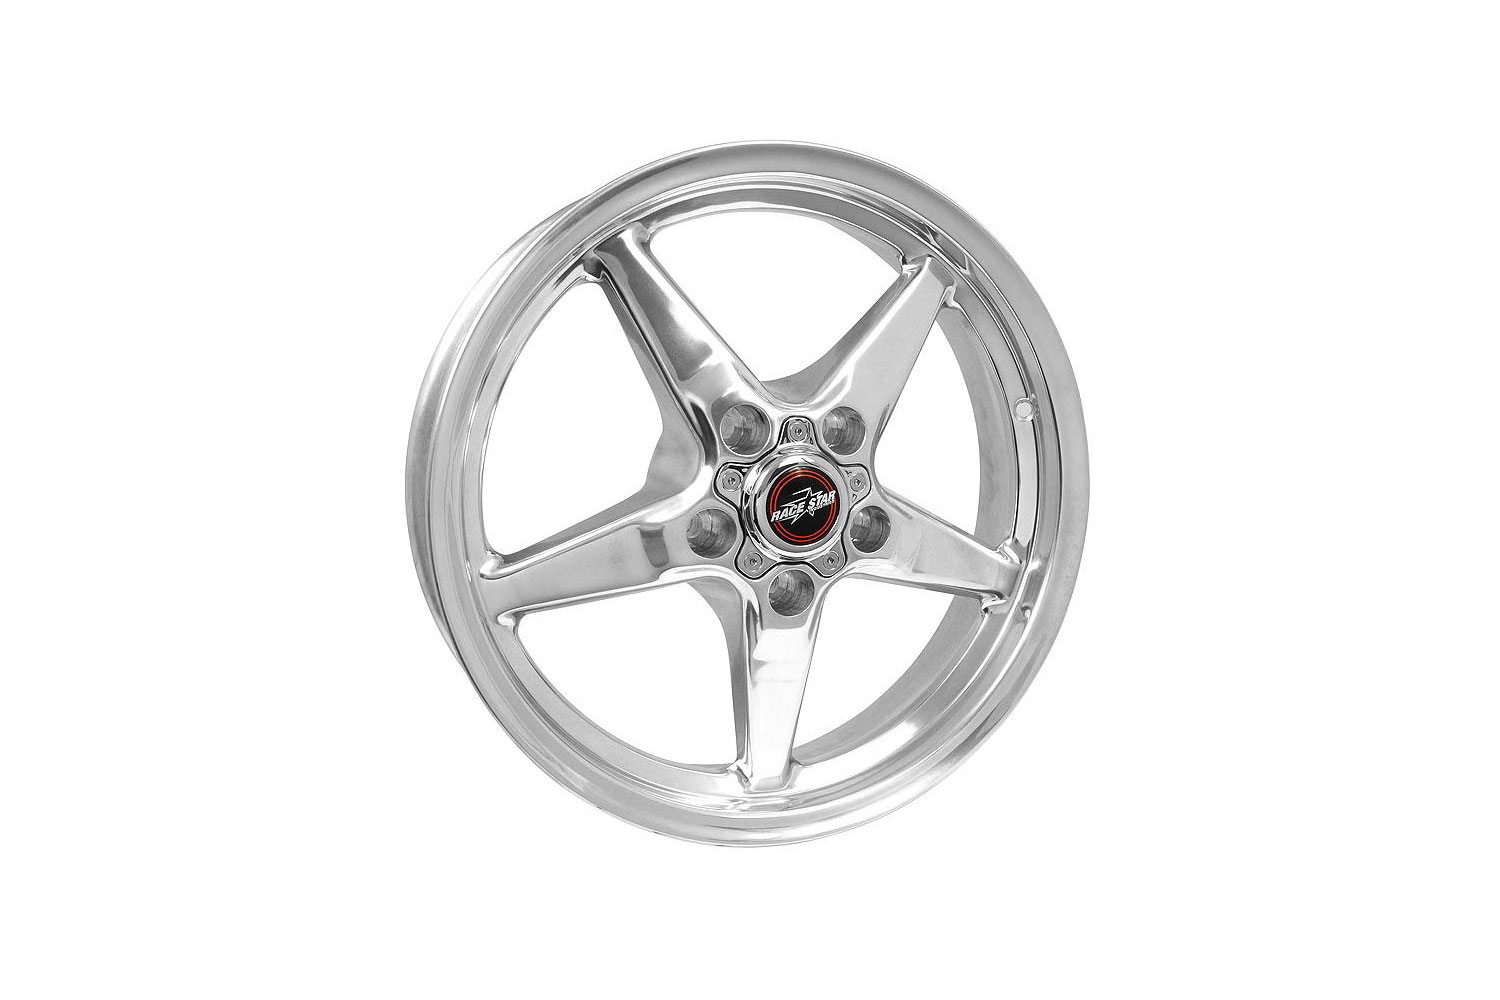 Race Star Mustang 92 Drag Star Polished Wheel - 17x4.5 (1979-2021)